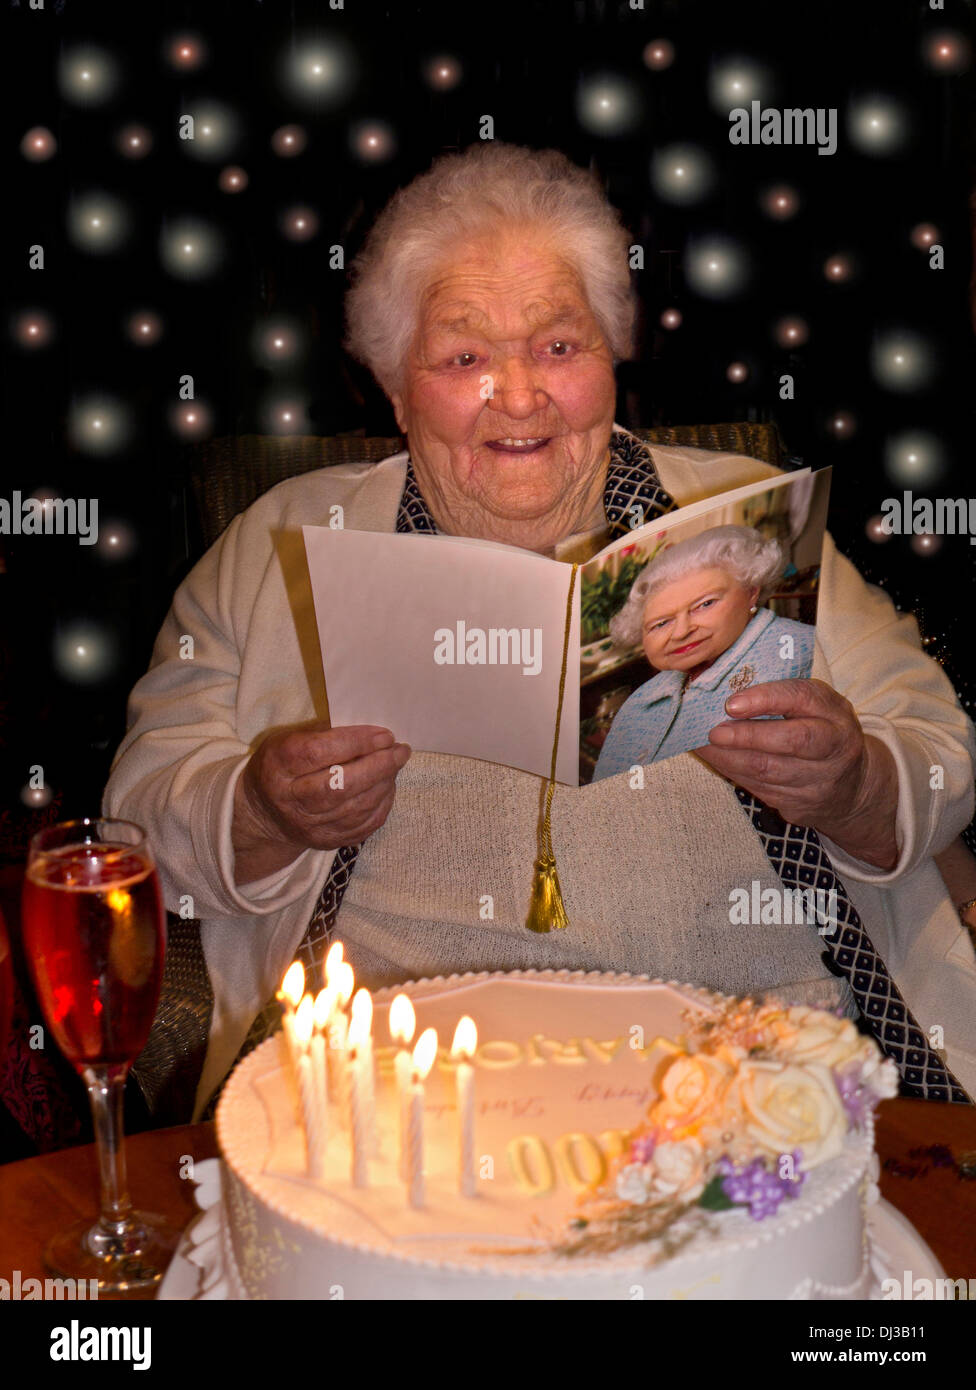 Queen Card Photos Queen Card Images Alamy – 100 Birthday Card from Queen